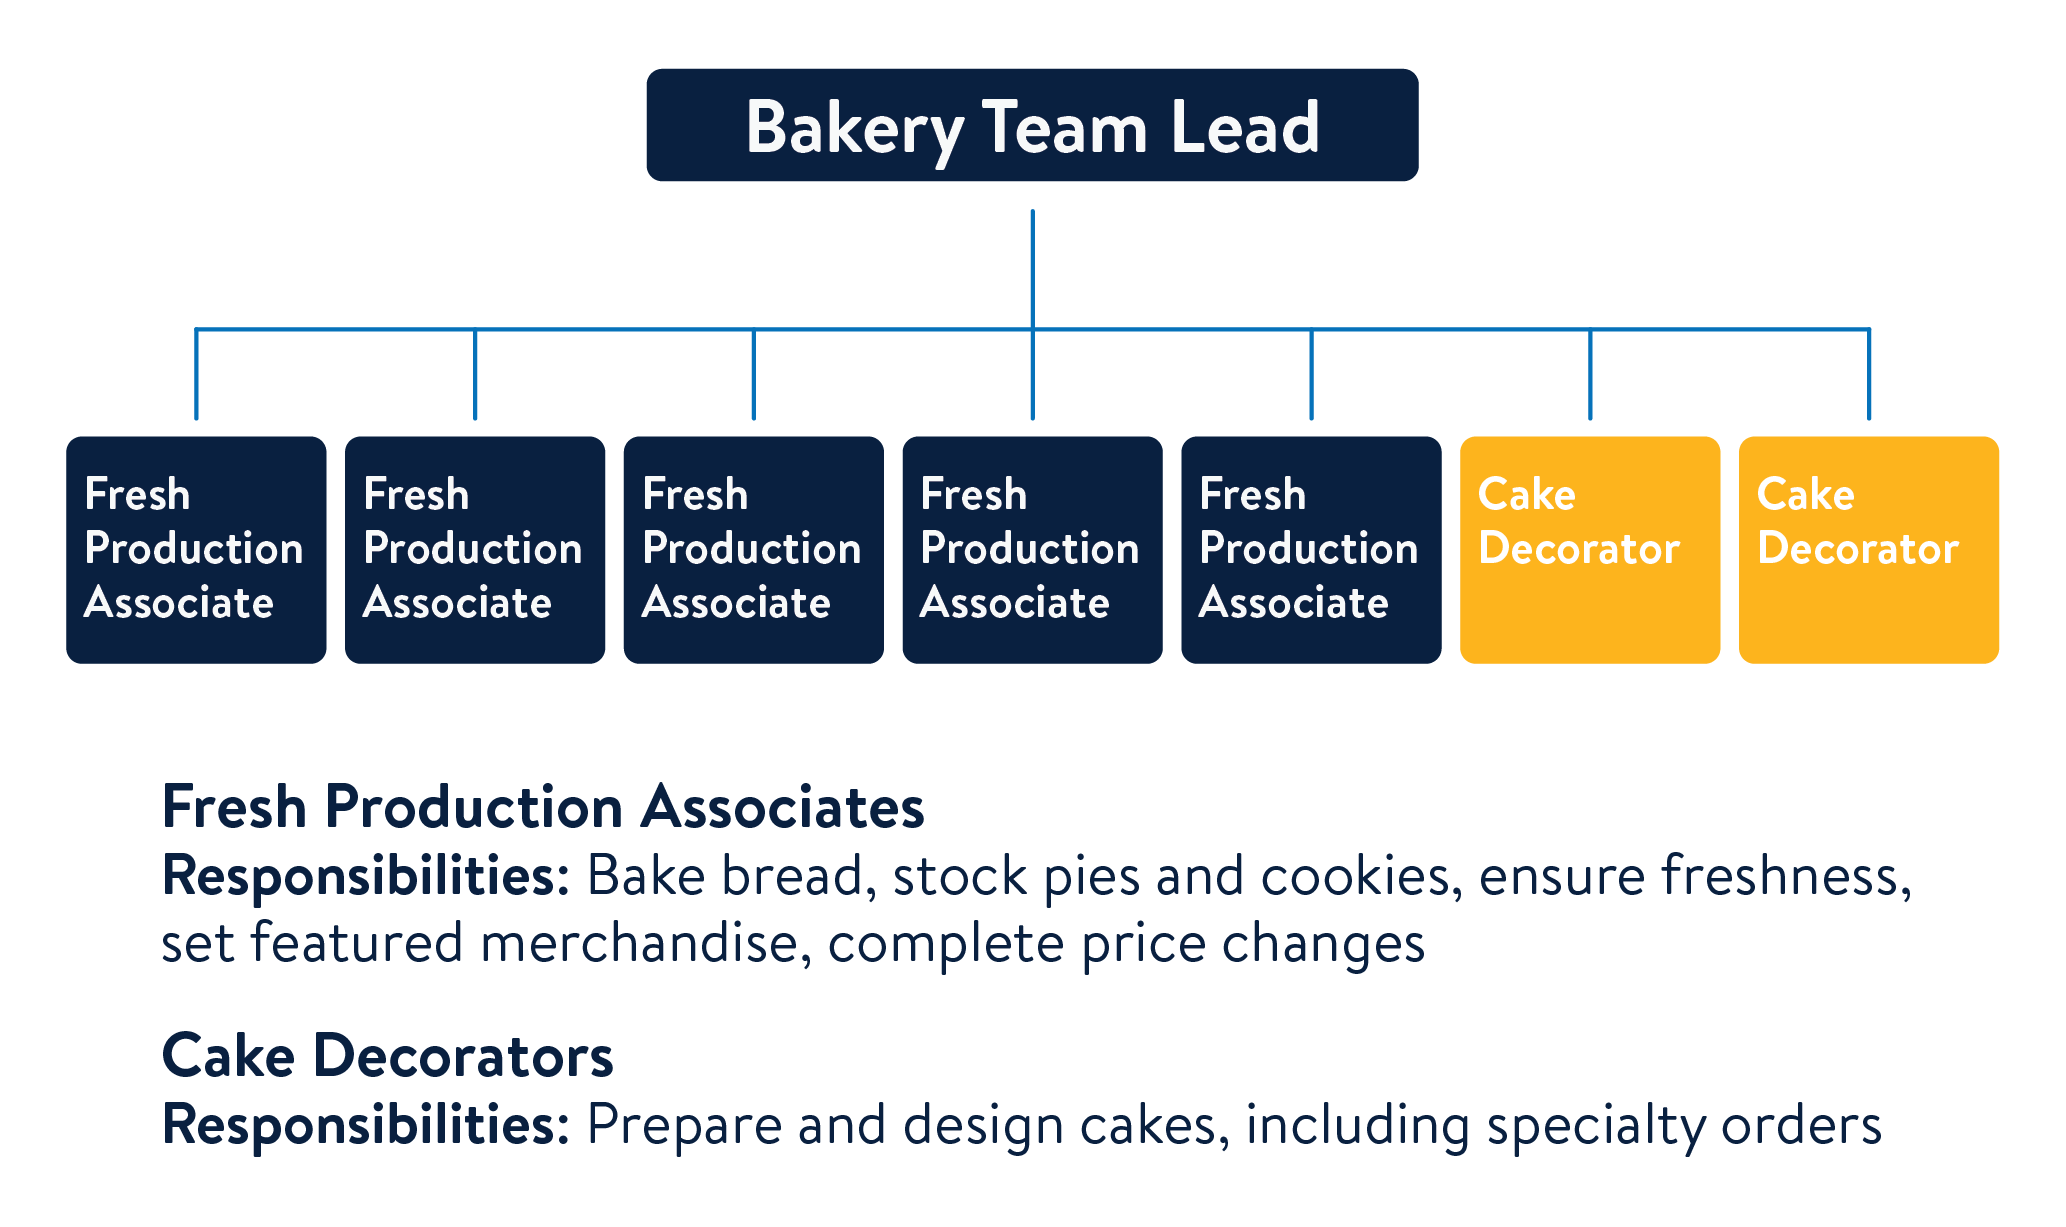 Bakery Team Lead graphic 2020